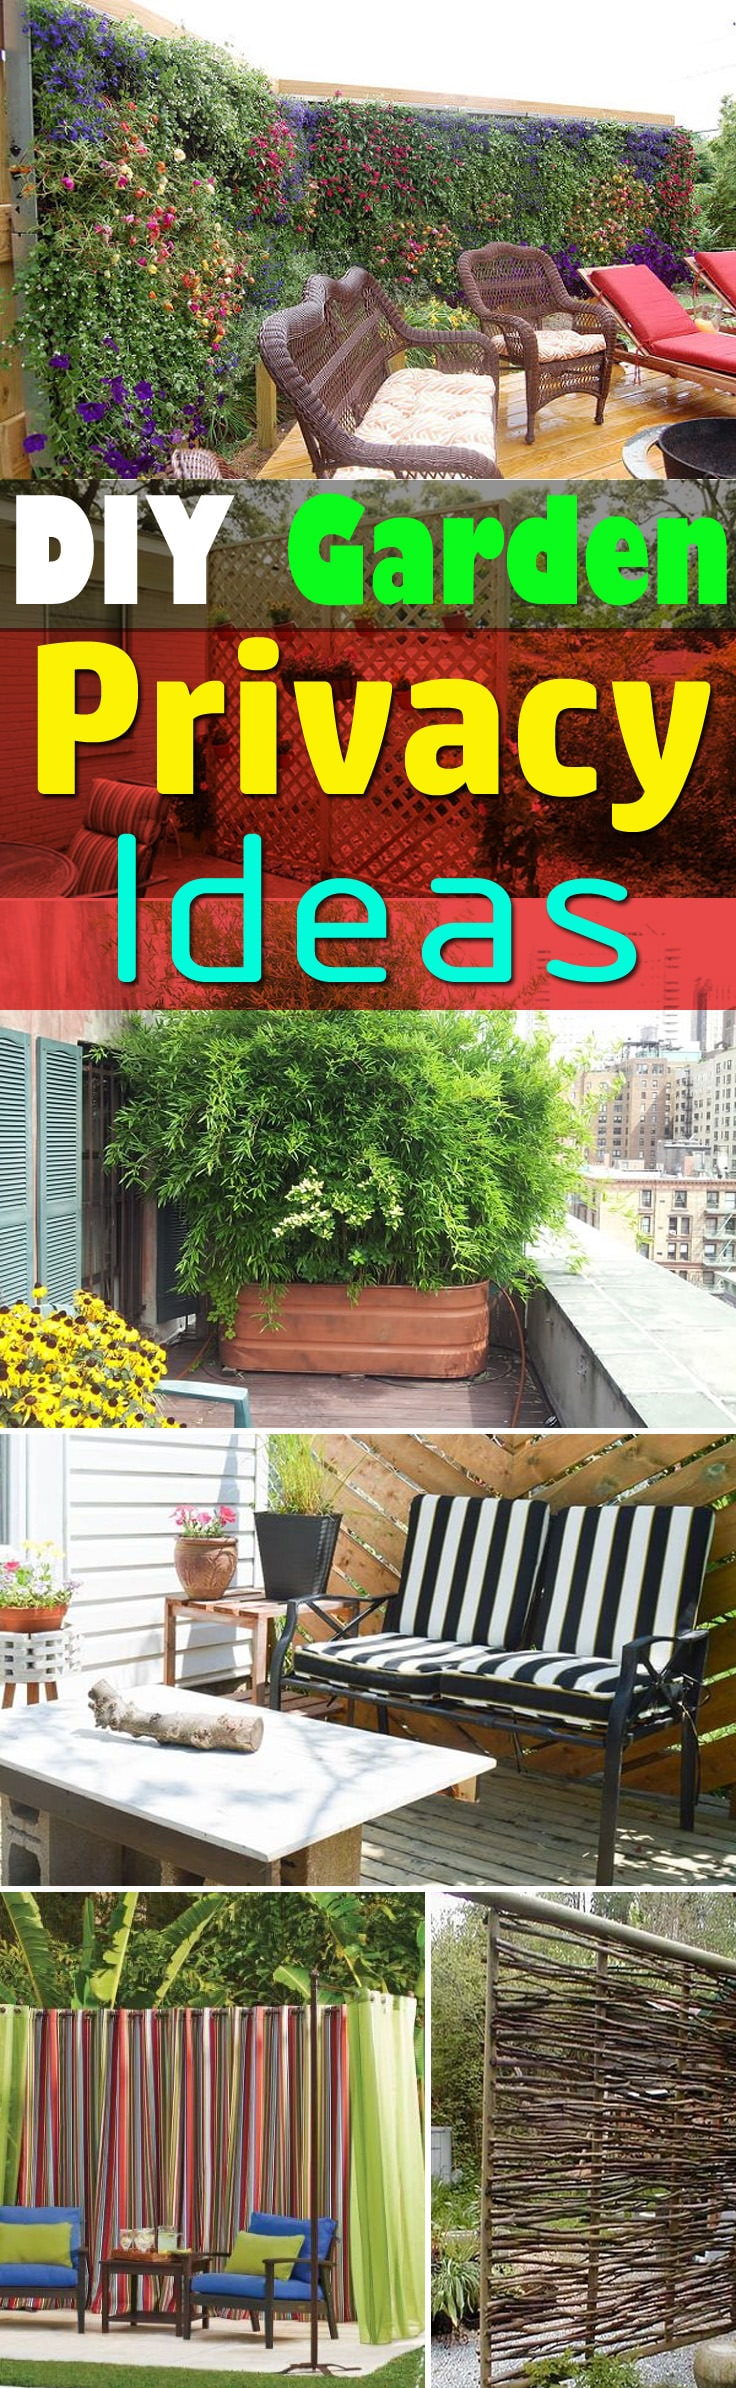 If You Need Privacy In Your Garden, The 26 DIY Garden Privacy Ideas Here Are